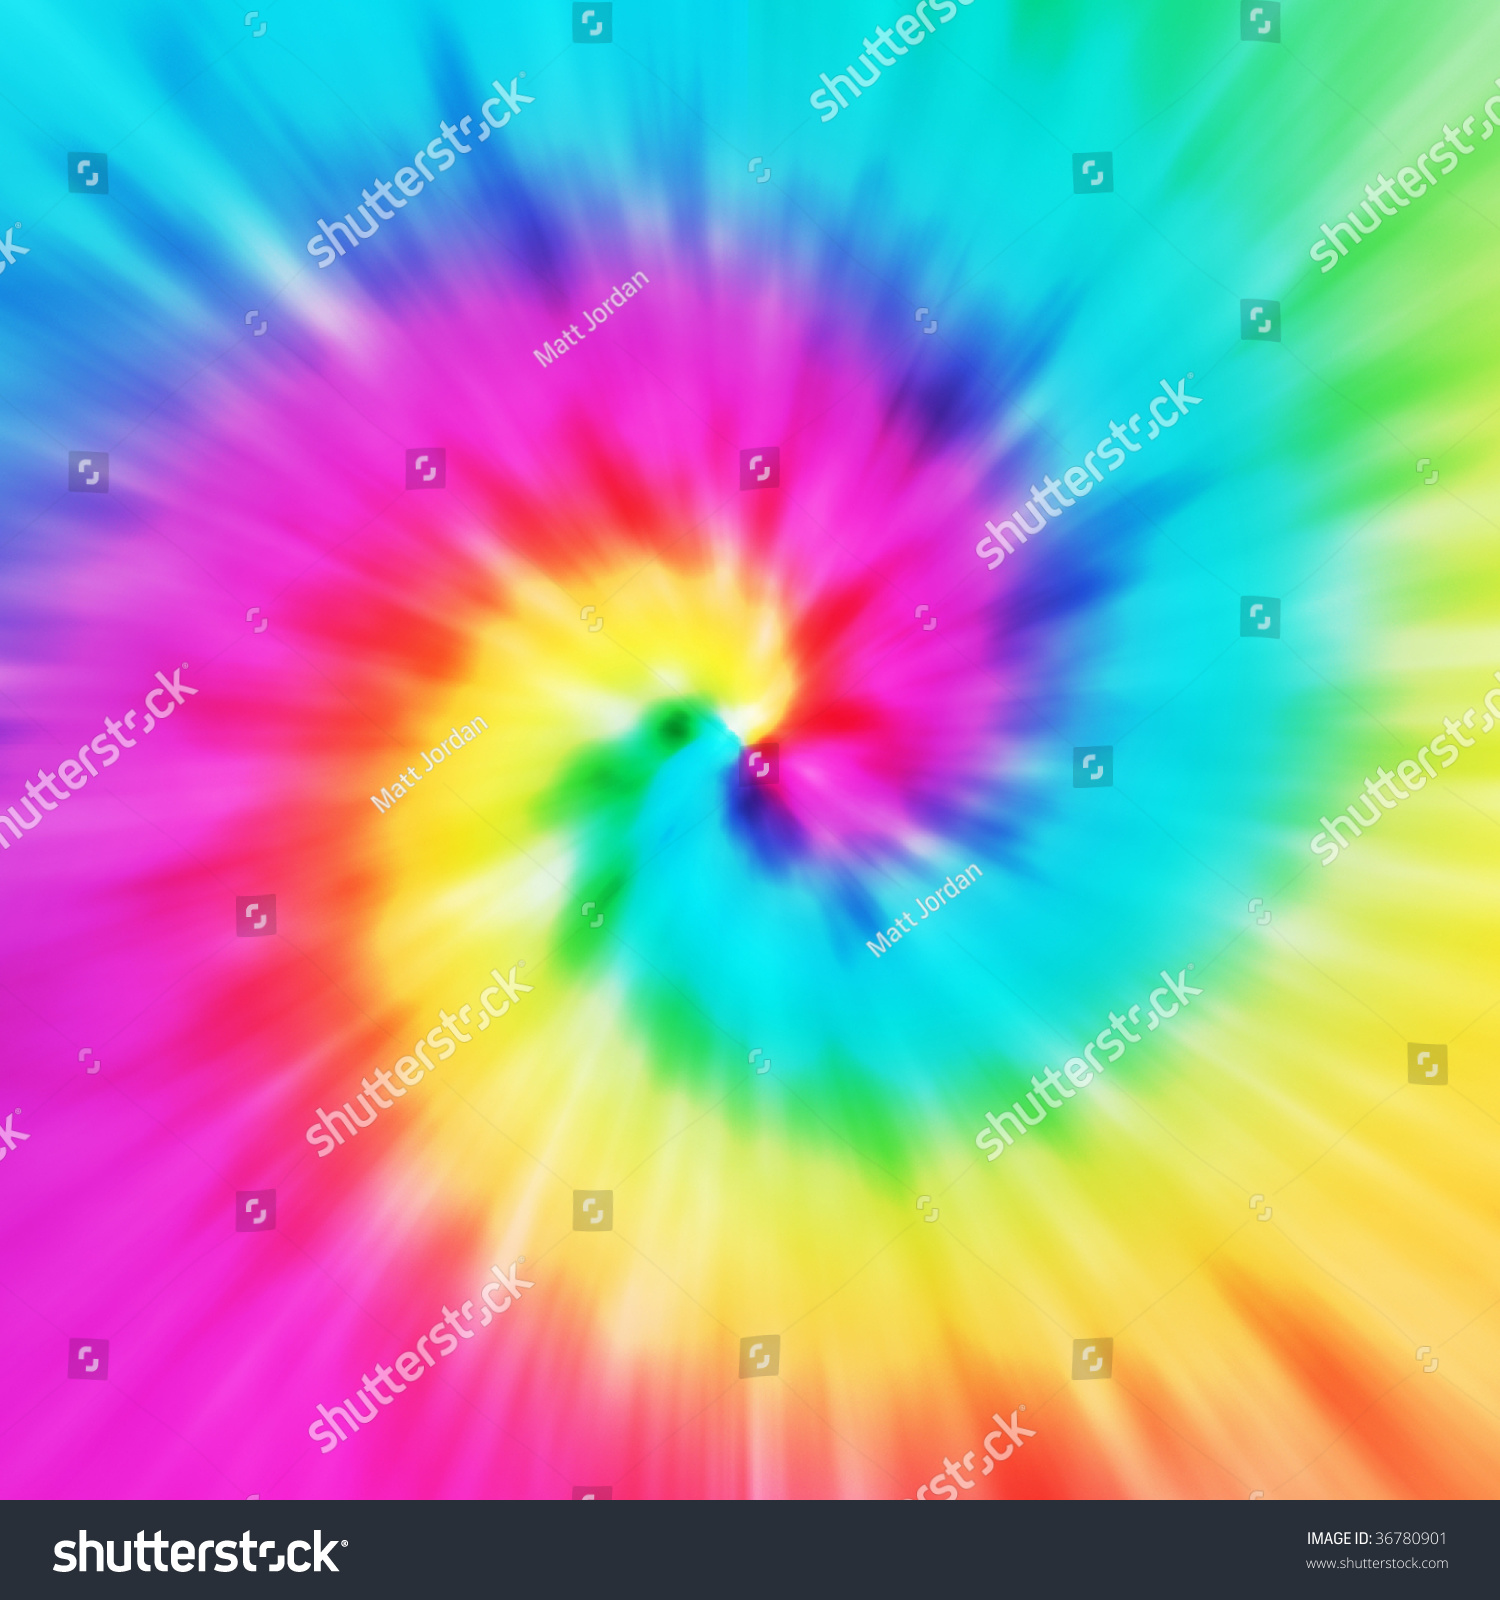 Realistic spiral tiedye illustration variety colors stock illustration 36780901 shutterstock - Tie and dye colore ...